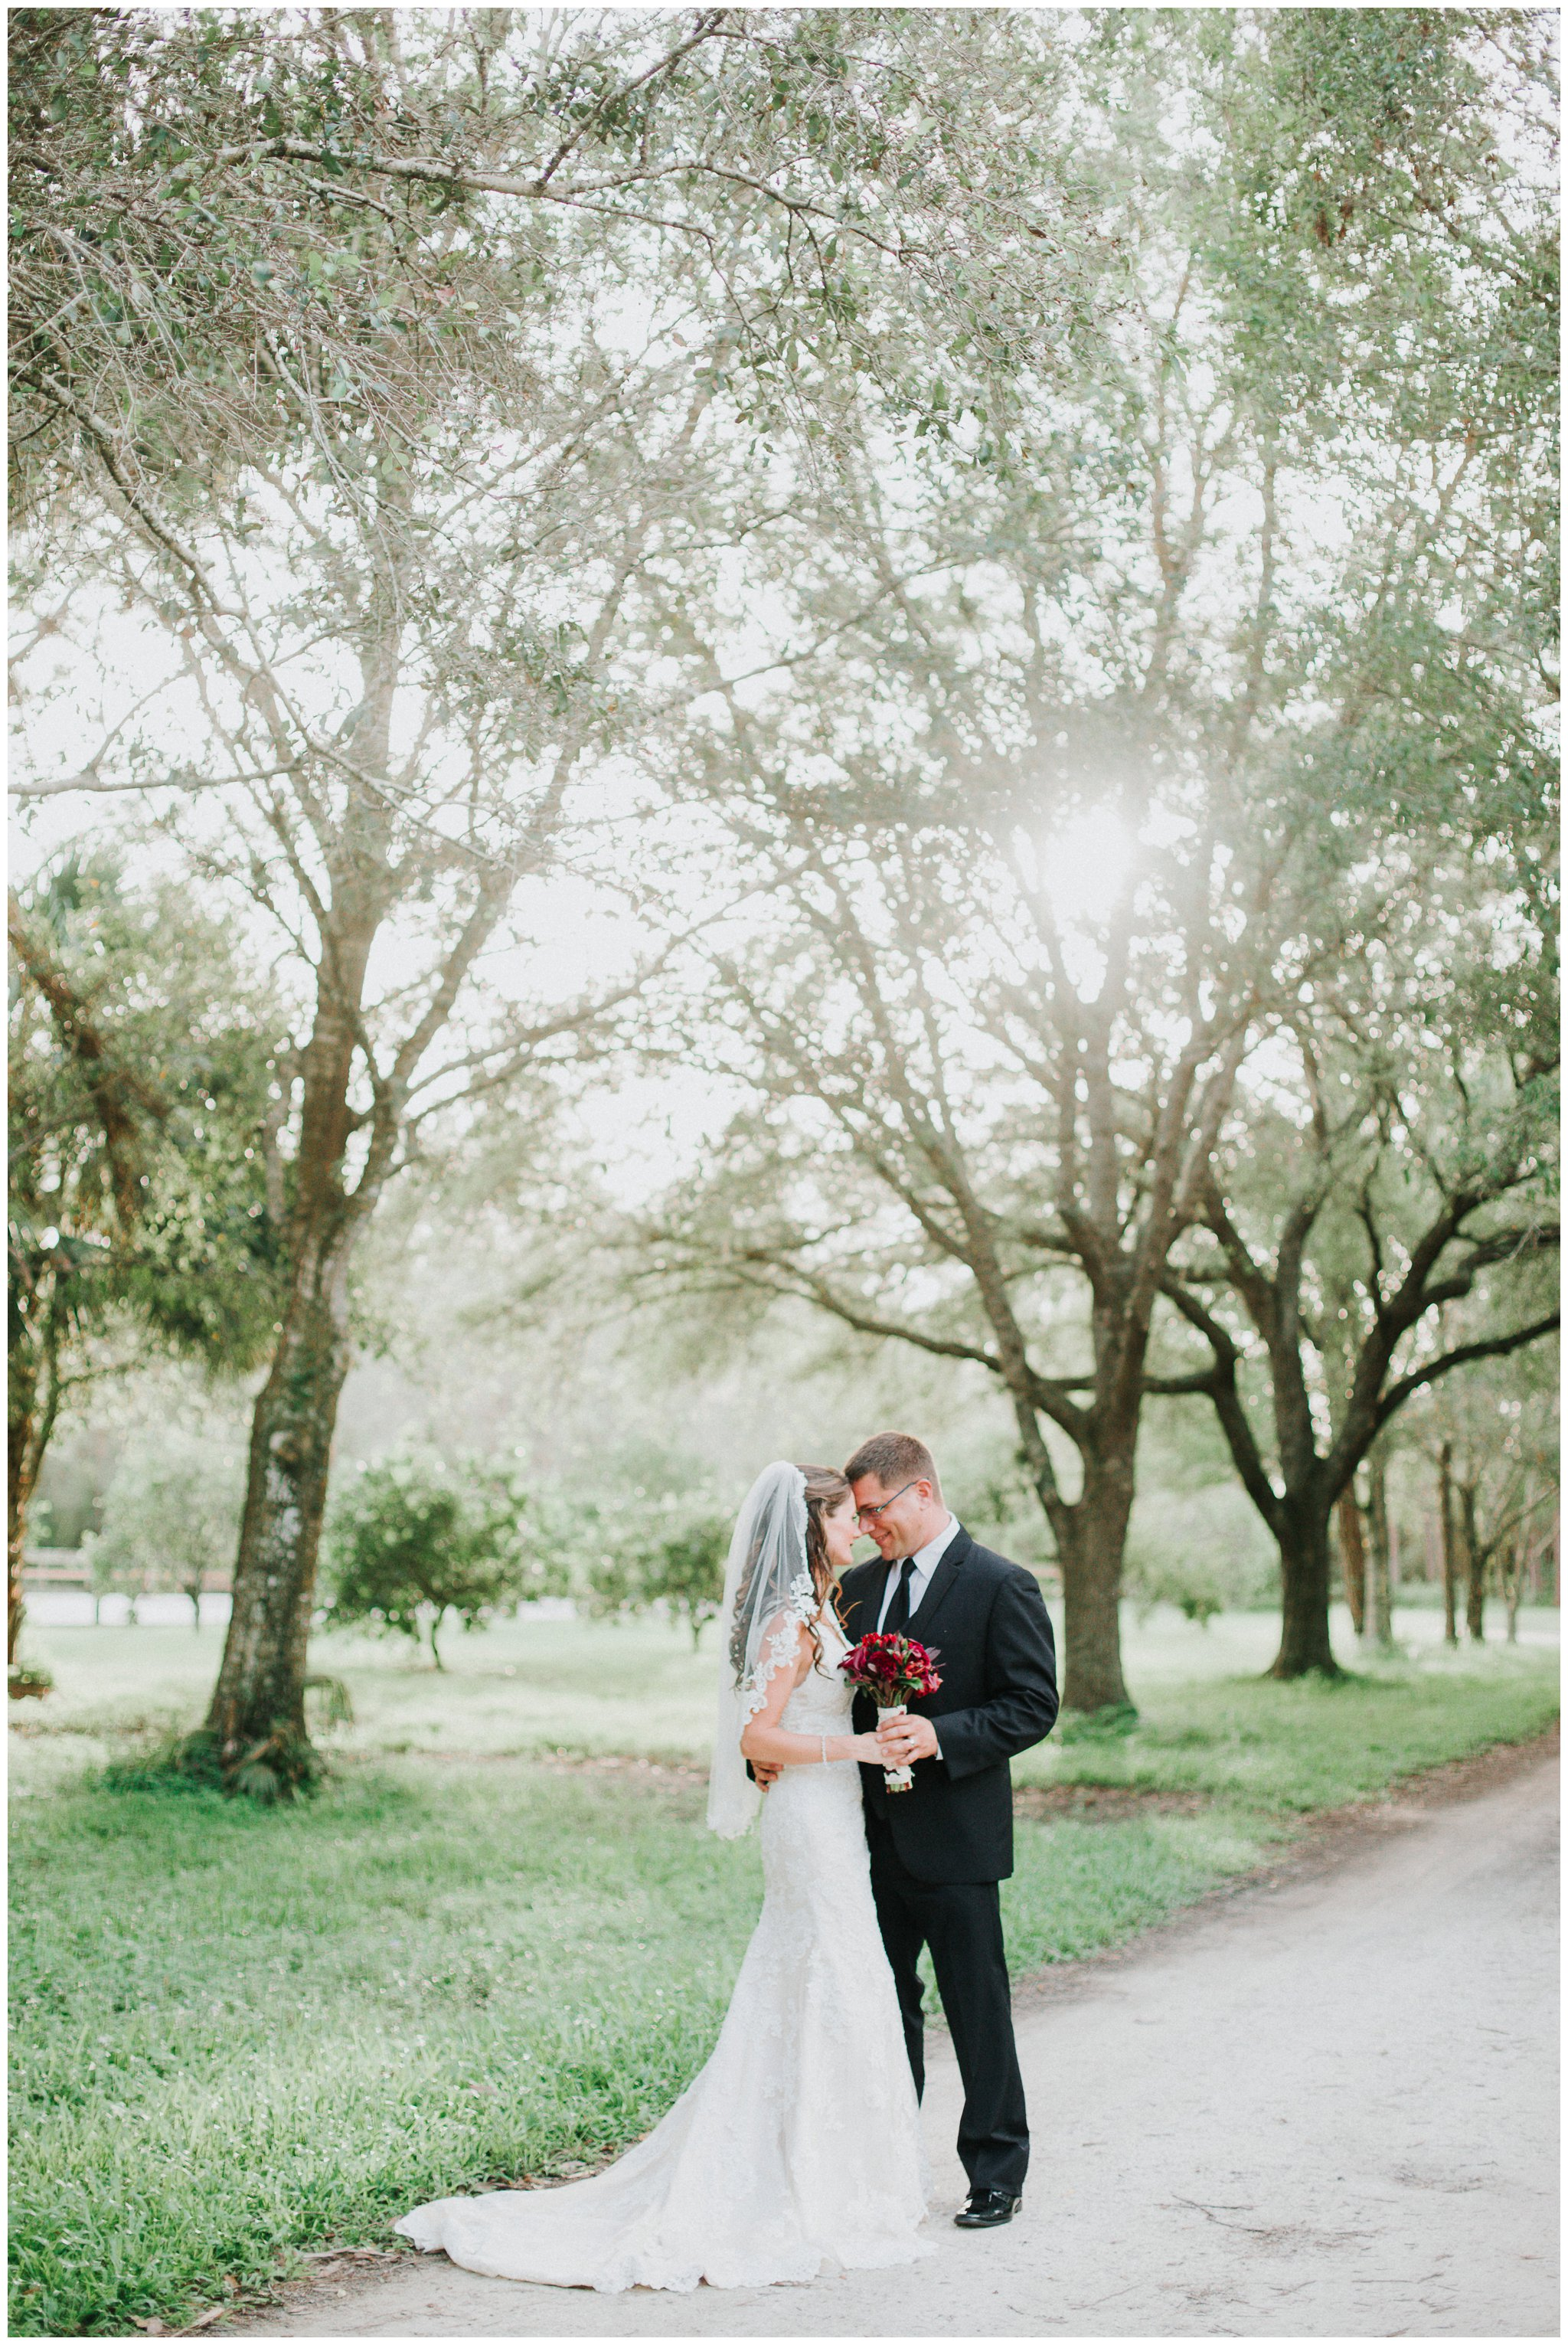 Nicole and Jimmy-BMR Stables Wedding-kimberly smith photography_0059.jpg